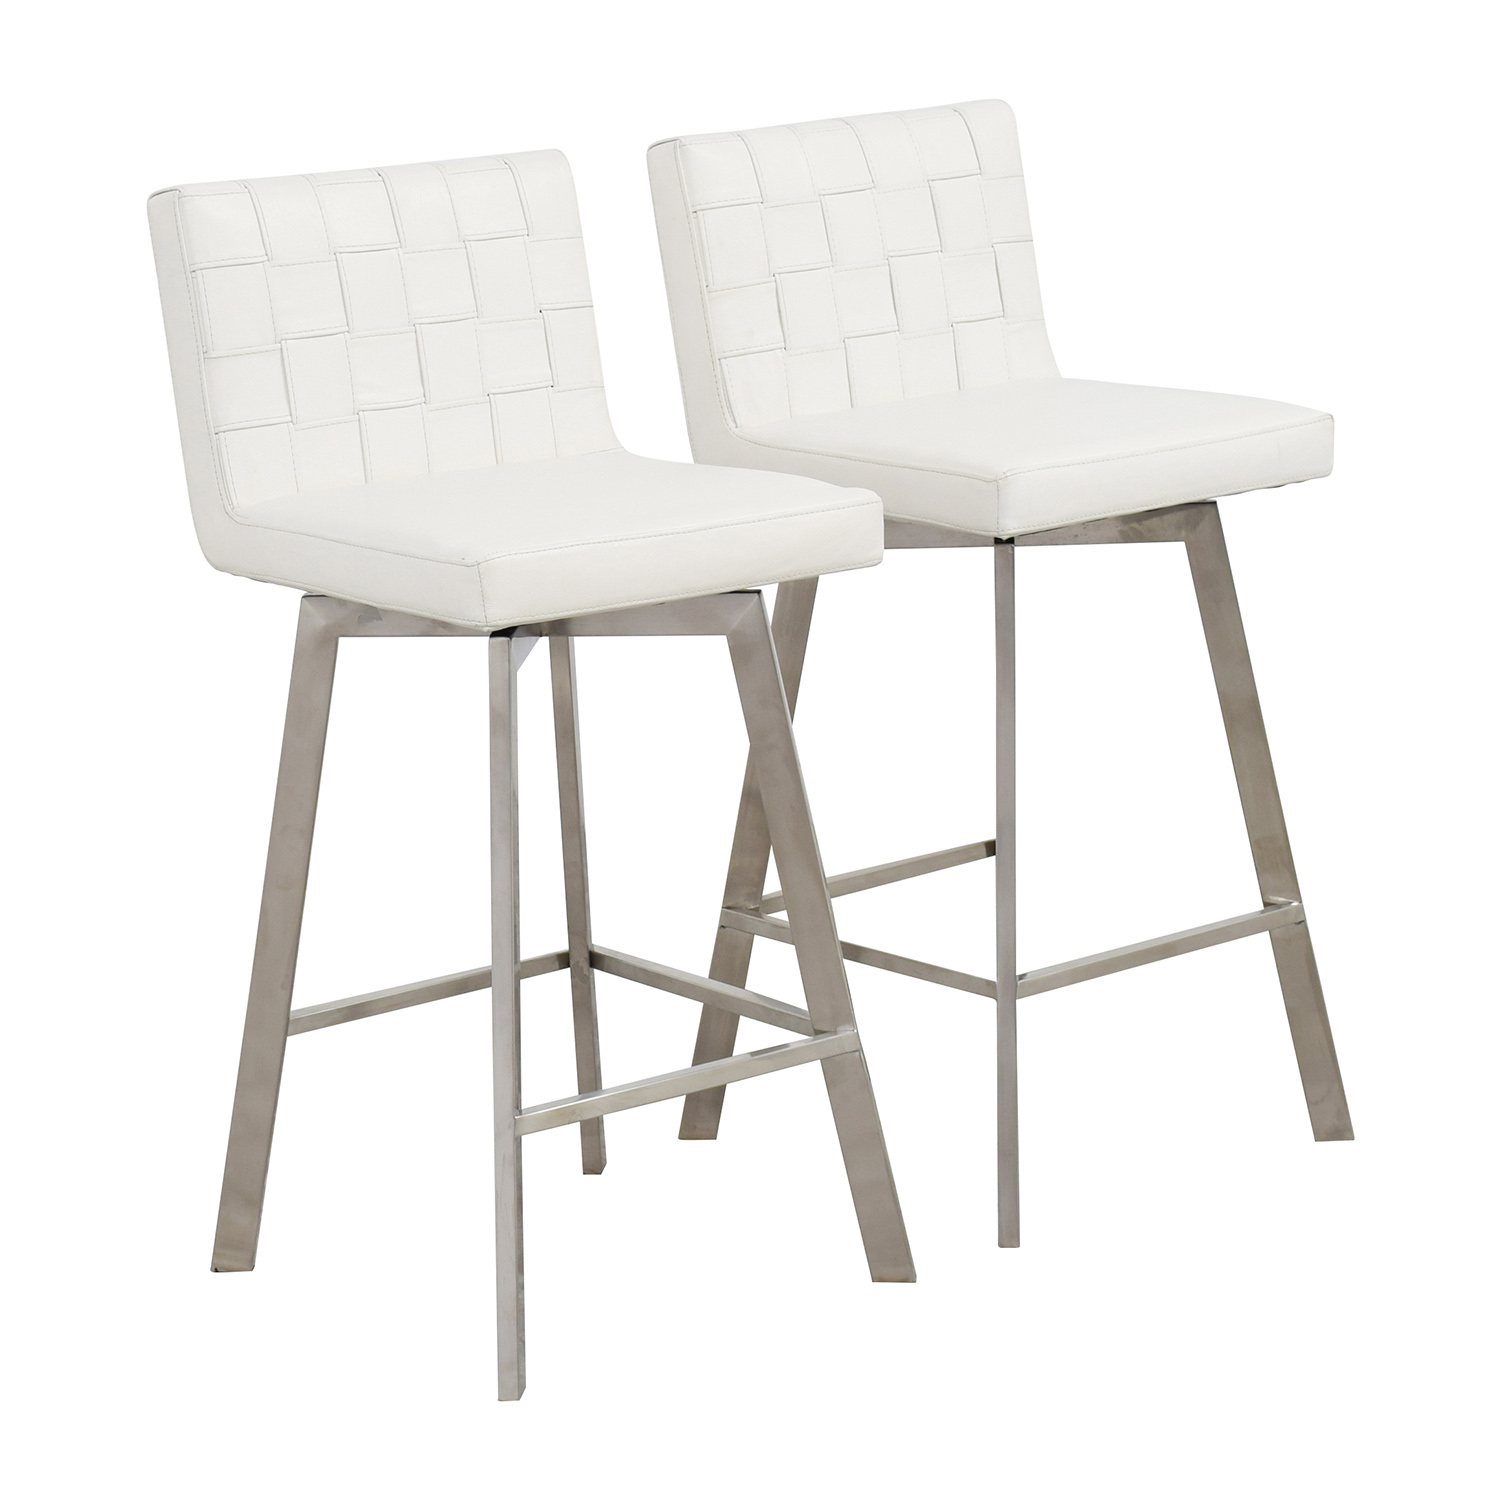 90 off inmod inmod constantine white bar stools chairs. Black Bedroom Furniture Sets. Home Design Ideas